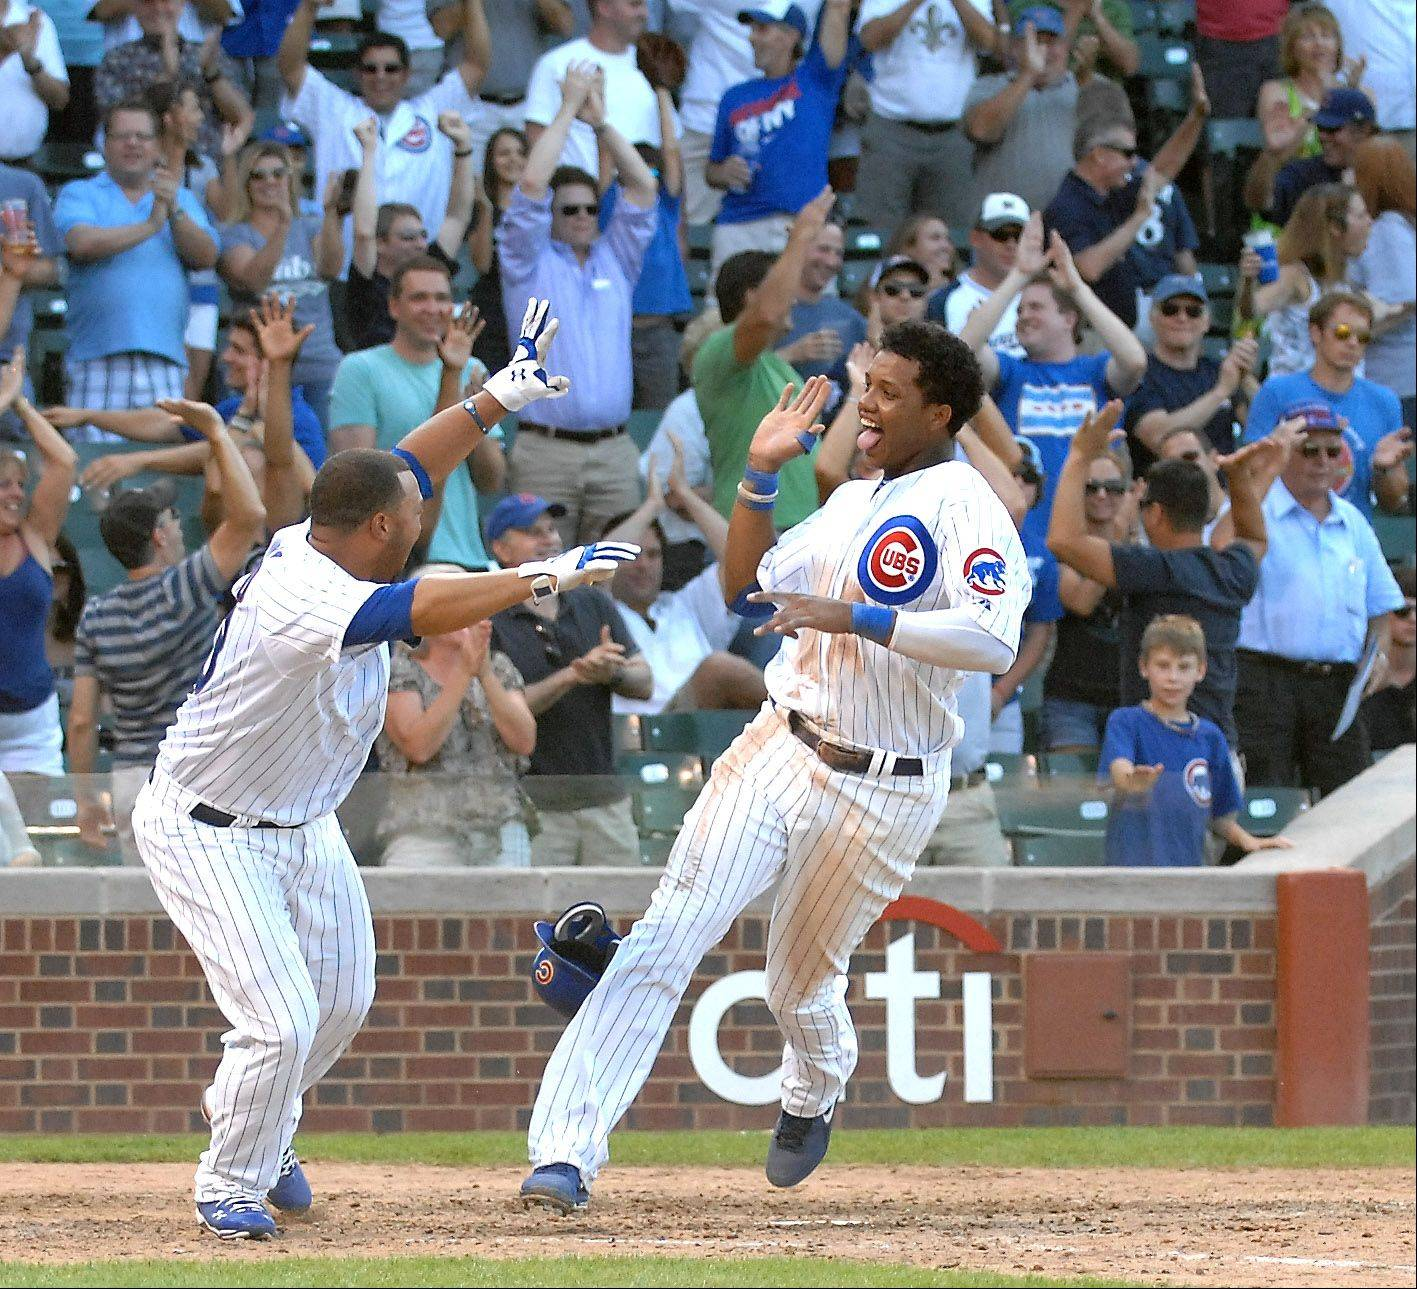 Chicago Cubs shortstop Starlin Castro crosses the plate as the winning run in the bottom of the ninth on a hit by Alfonso Soriano to beat Milwaukee 12-11 during Thursday's game at Wrigley Field in Chicago. At left is Welington Castillo.